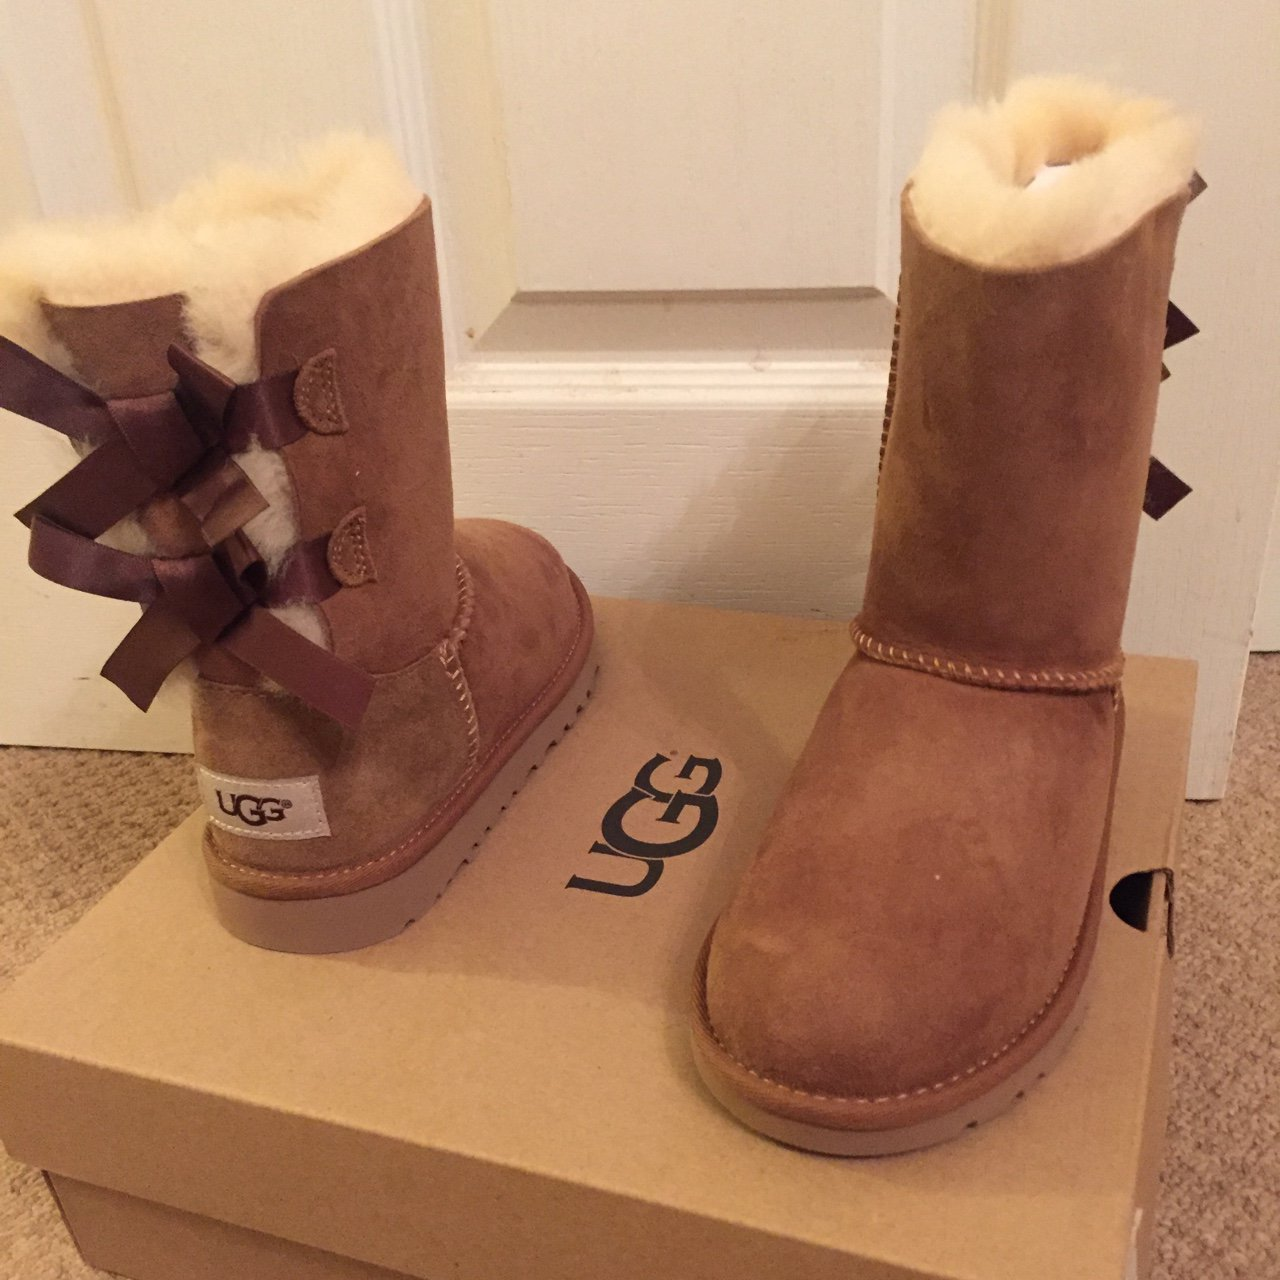 d9512d92b99c Girls Ugg boots size 12 brand new in box  UGG - Depop